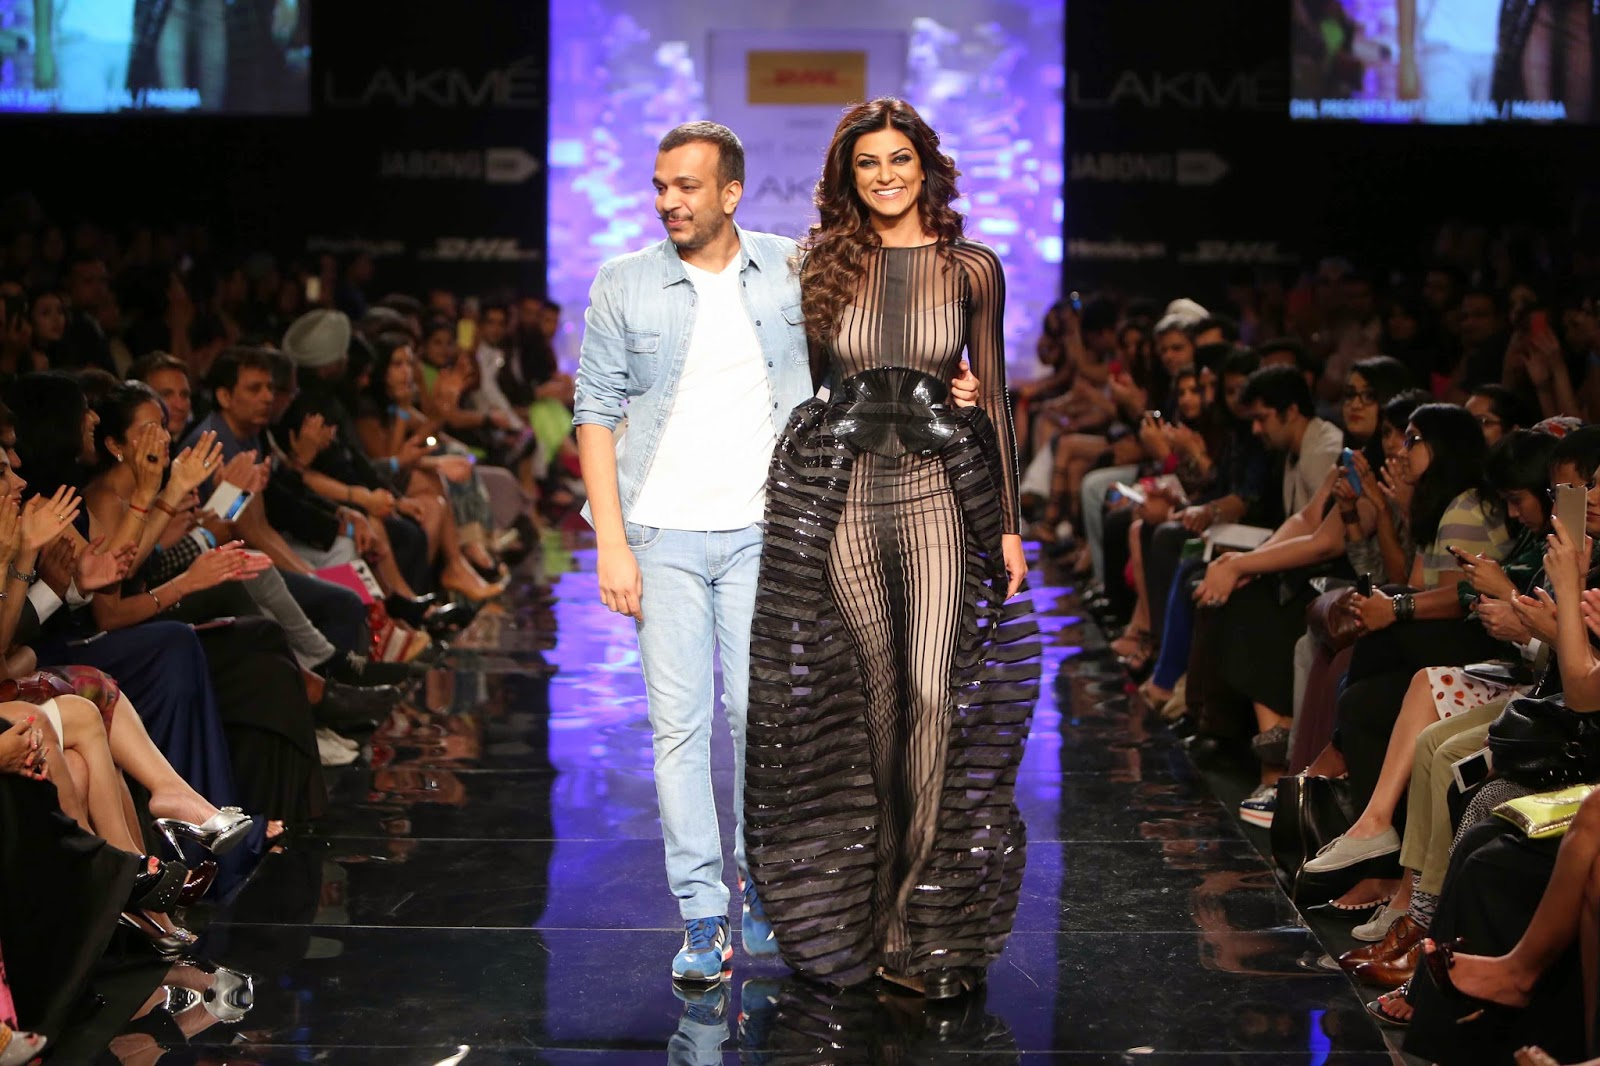 Amit Aggarwal and Sushmita Sen taking the bow......www.aquaintperspective.blogspot.com